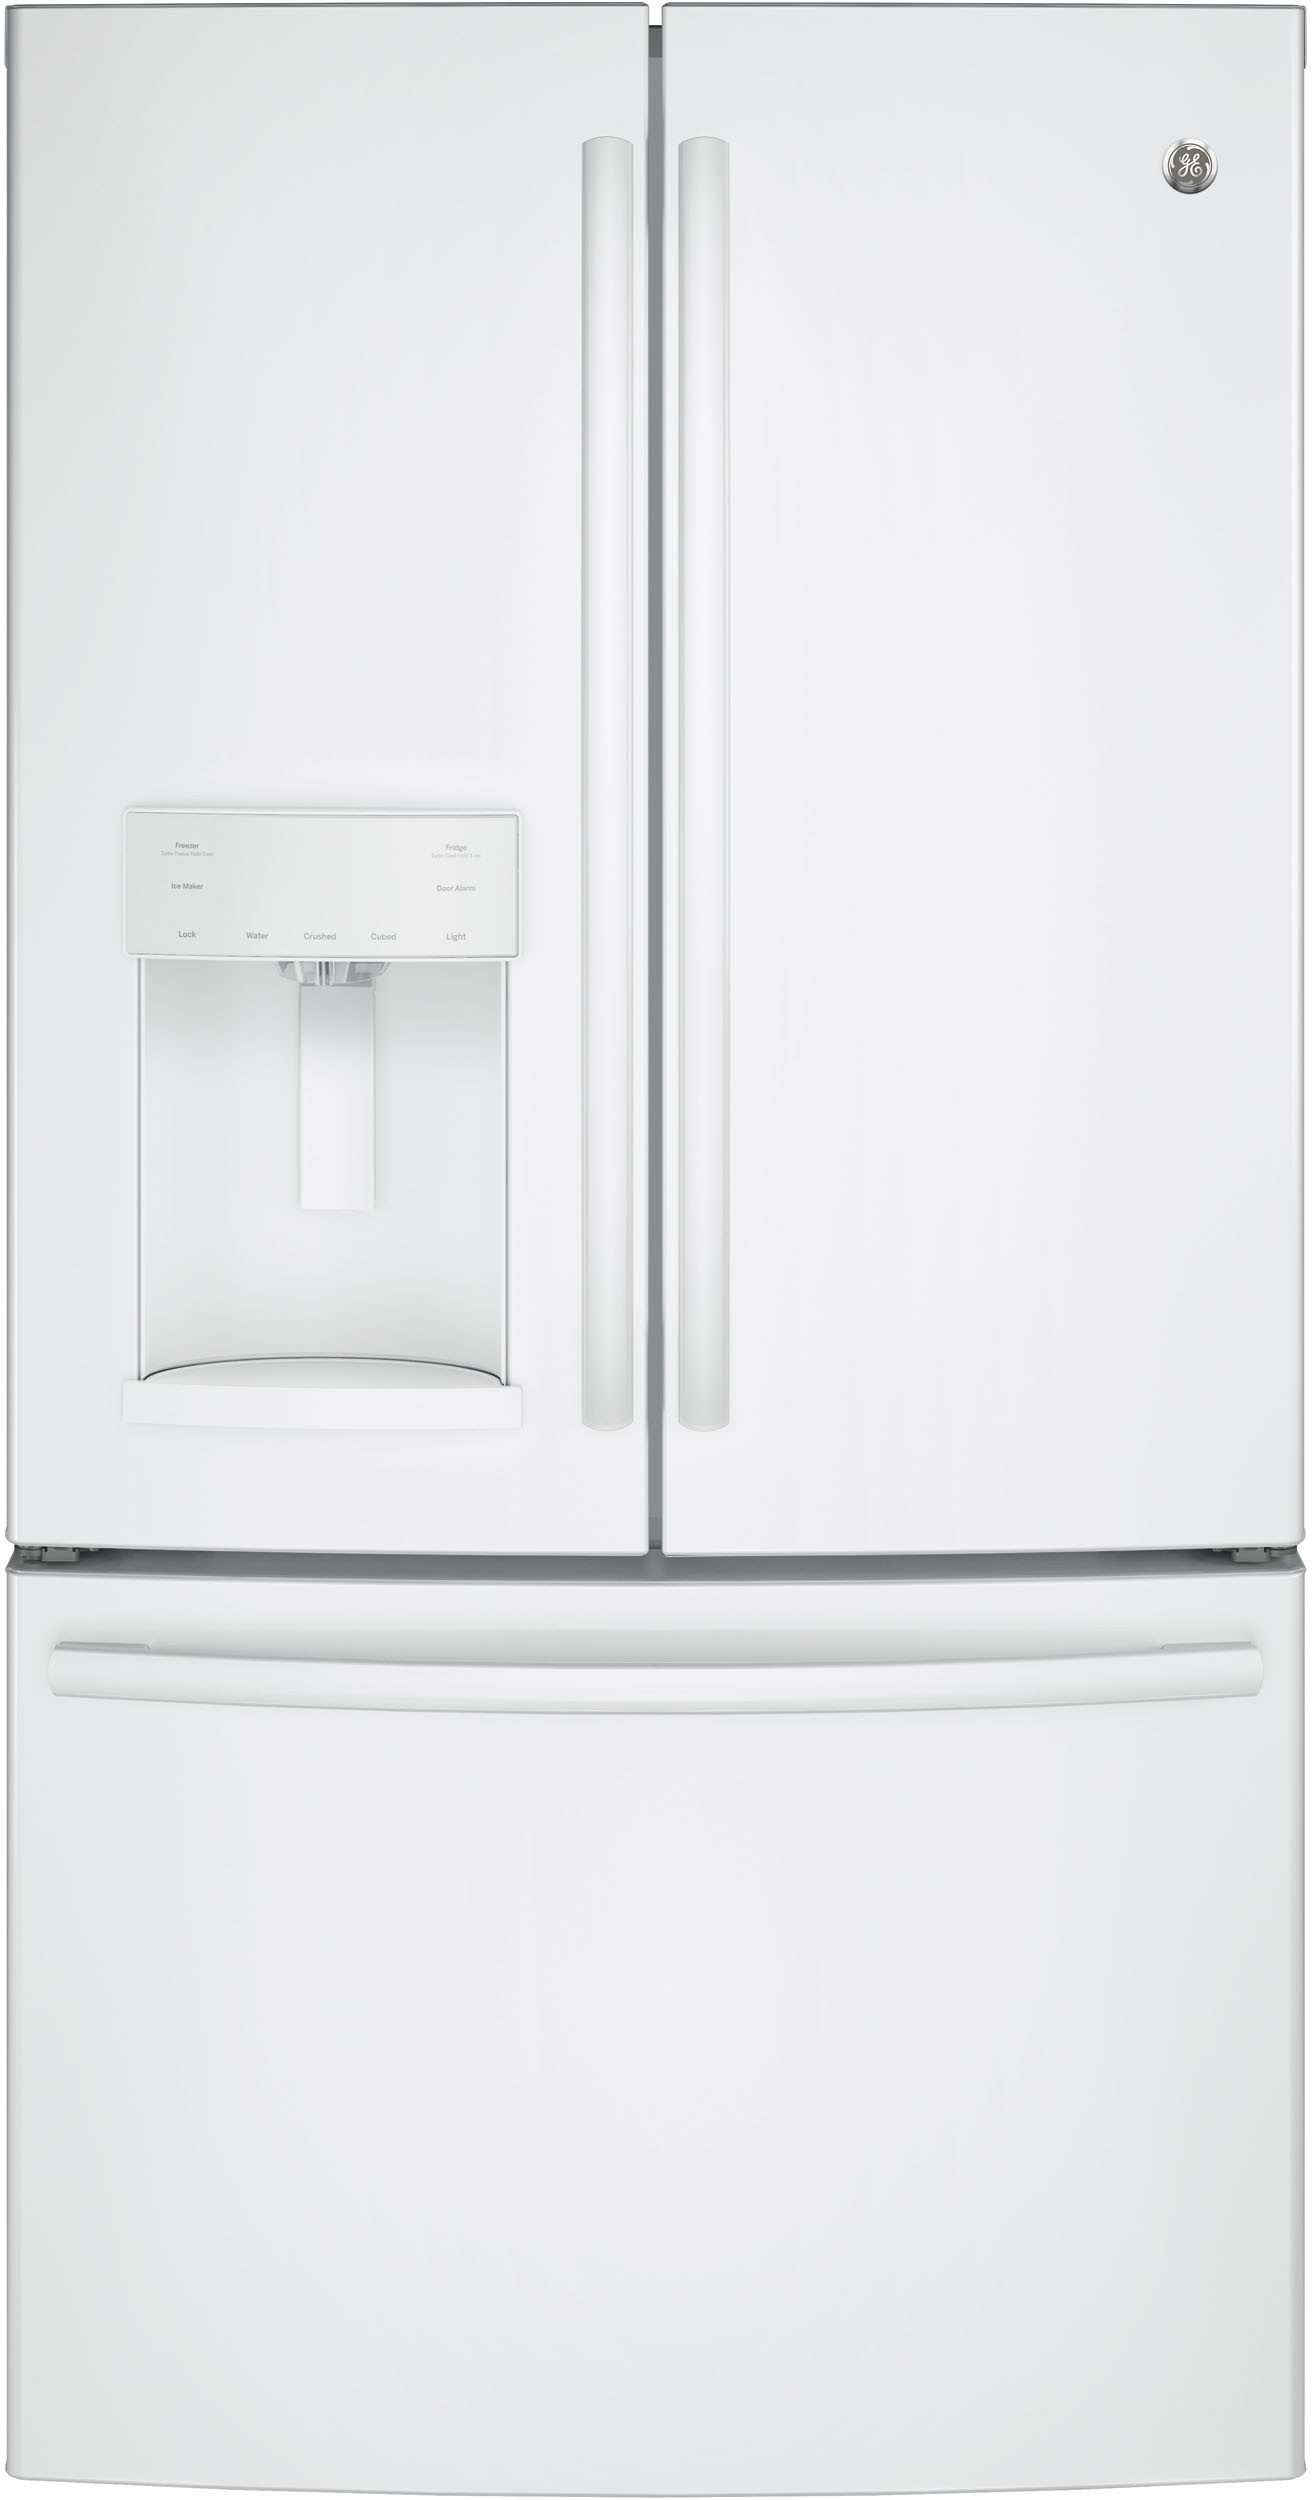 Ge 30 inch side by side white refrigerator - Ge 30 Inch Side By Side White Refrigerator 57